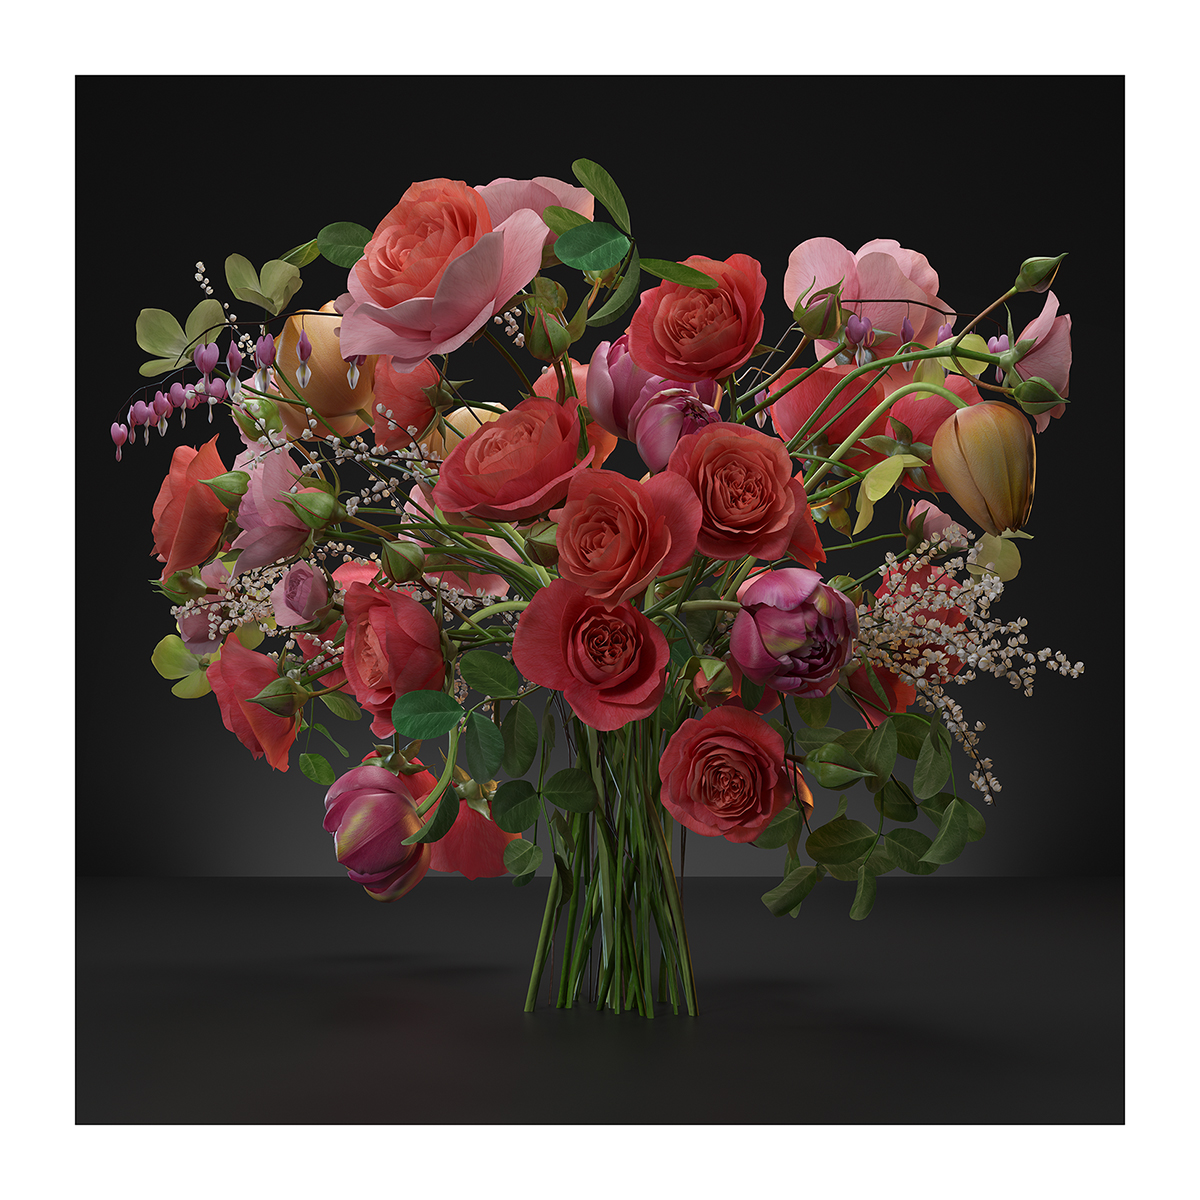 Virtual Flowers Bouquet N2 1 - 2020 - Virtual Flowers. Bouquet N°2